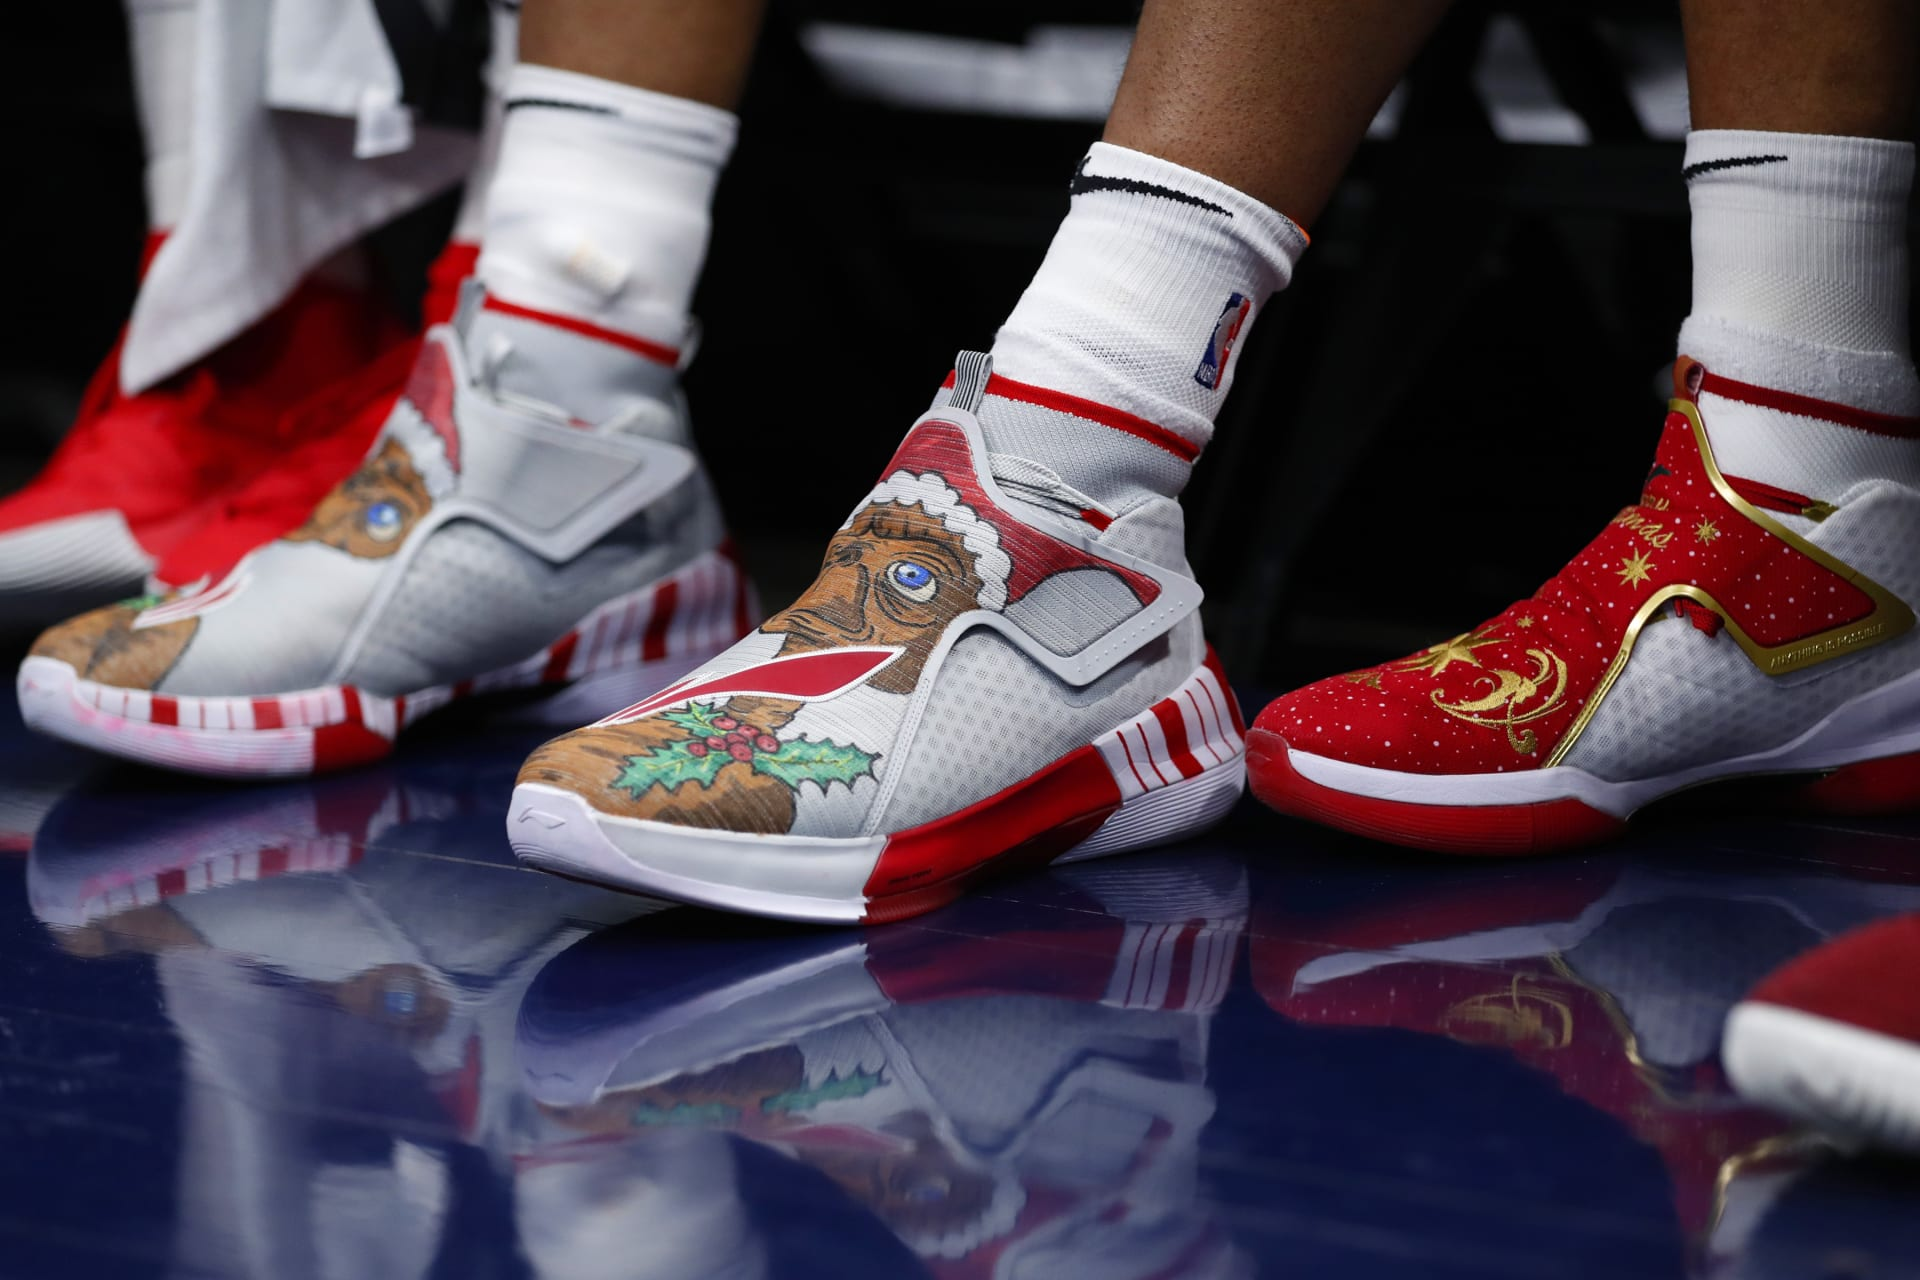 Christmas Sneakers.Nba Christmas Shoes Best Sneakers Worn On Christmas Day